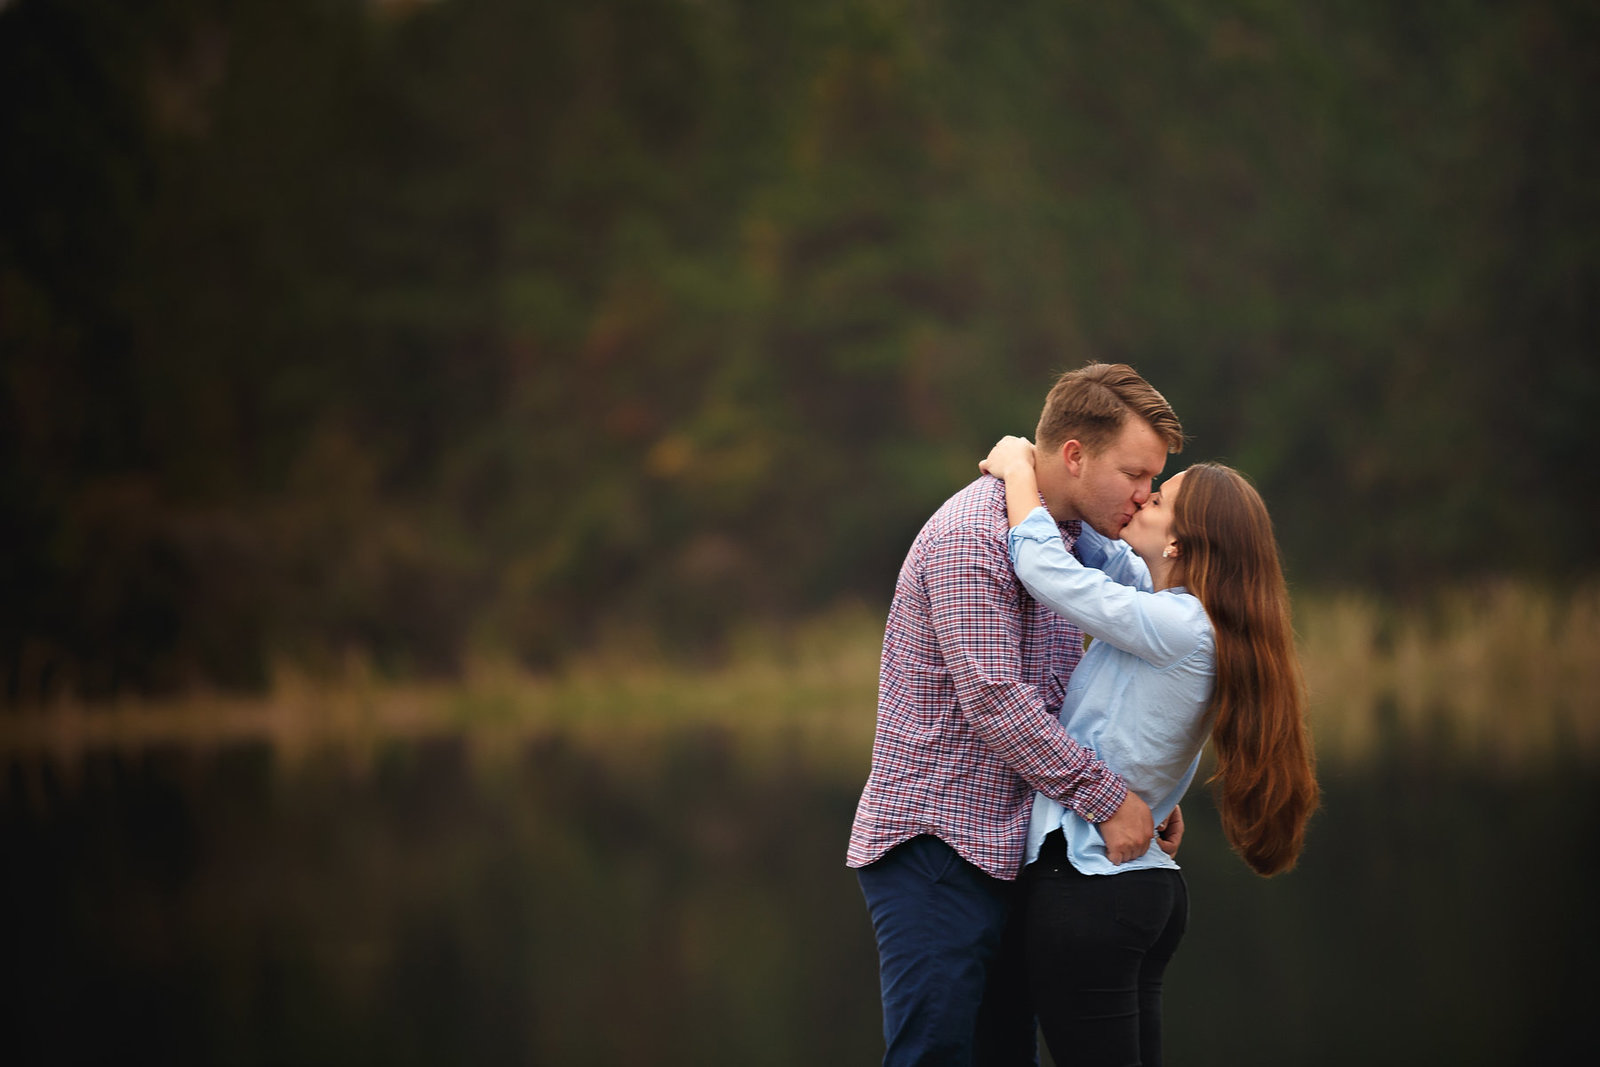 Fall-Engagement-Photoshoot-Jacksonville-DG9B0458 copy